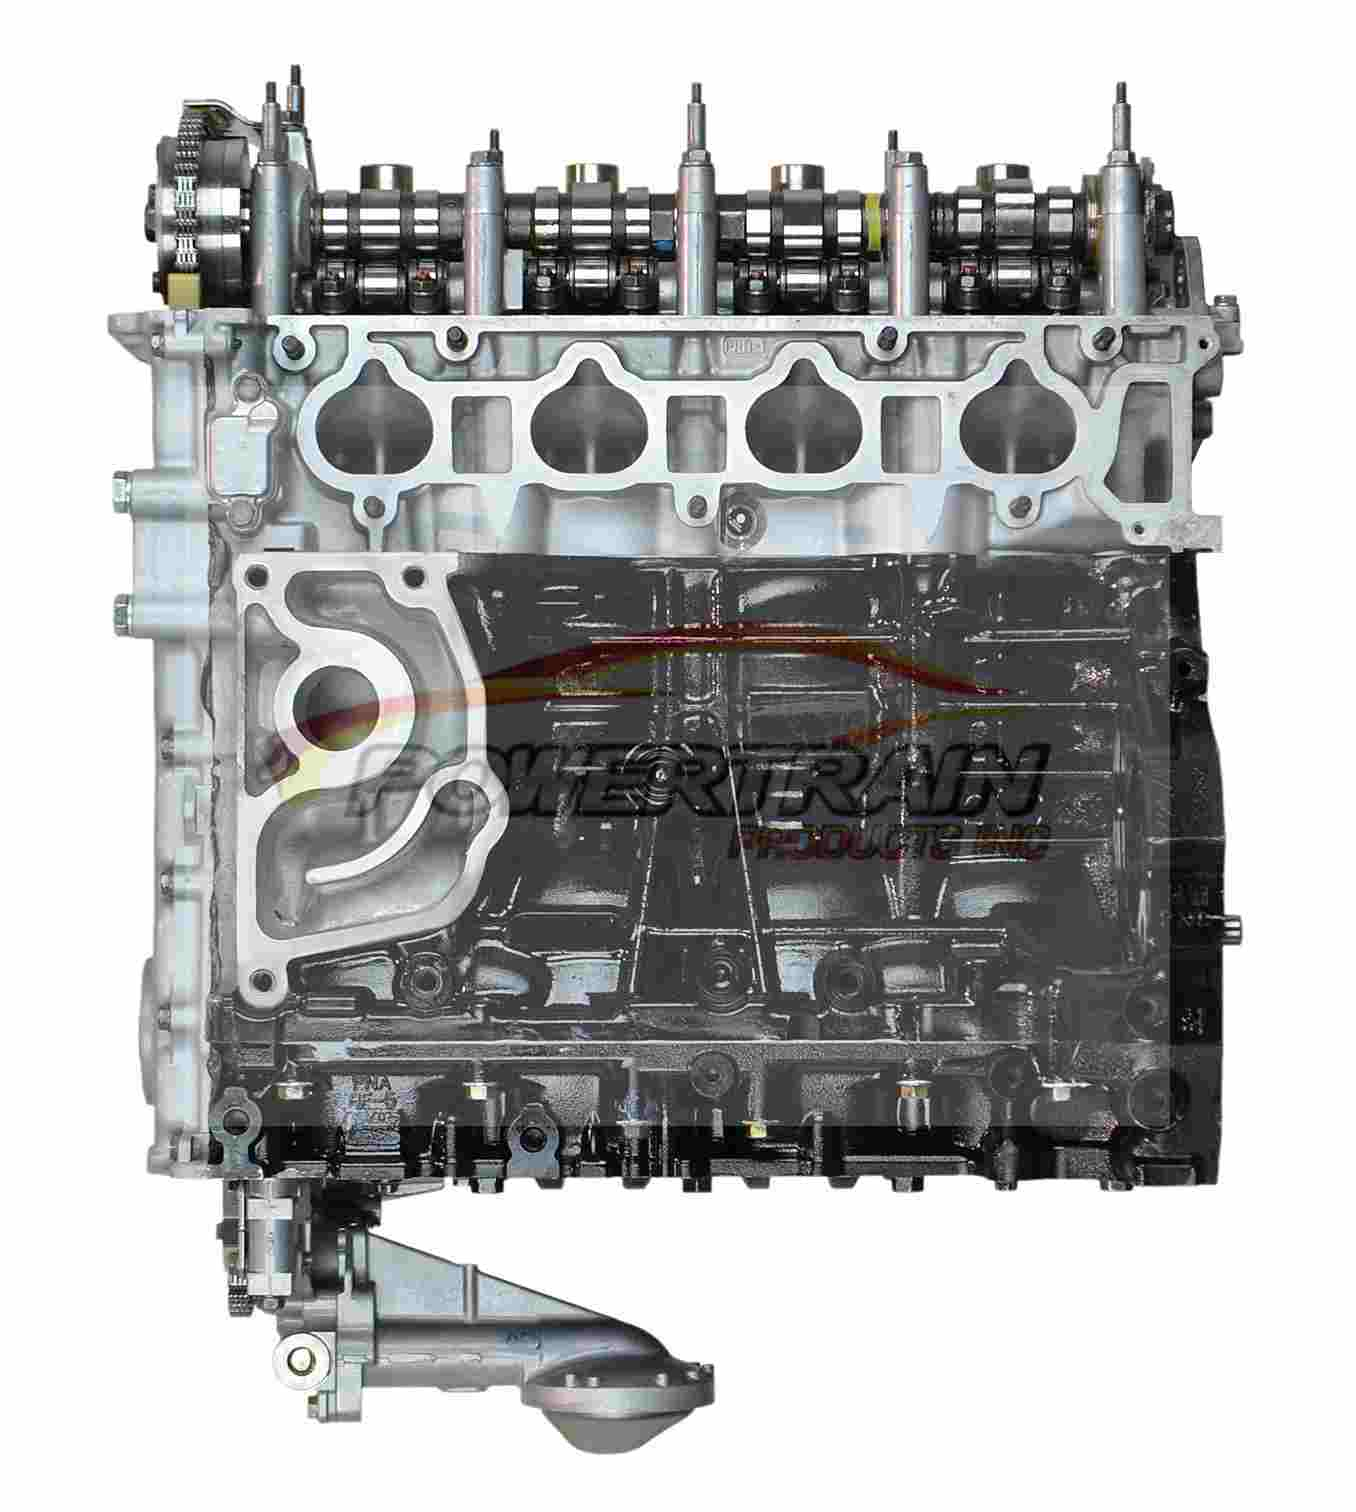 jdm large image integra acura gsr used engine model low view engines mileage